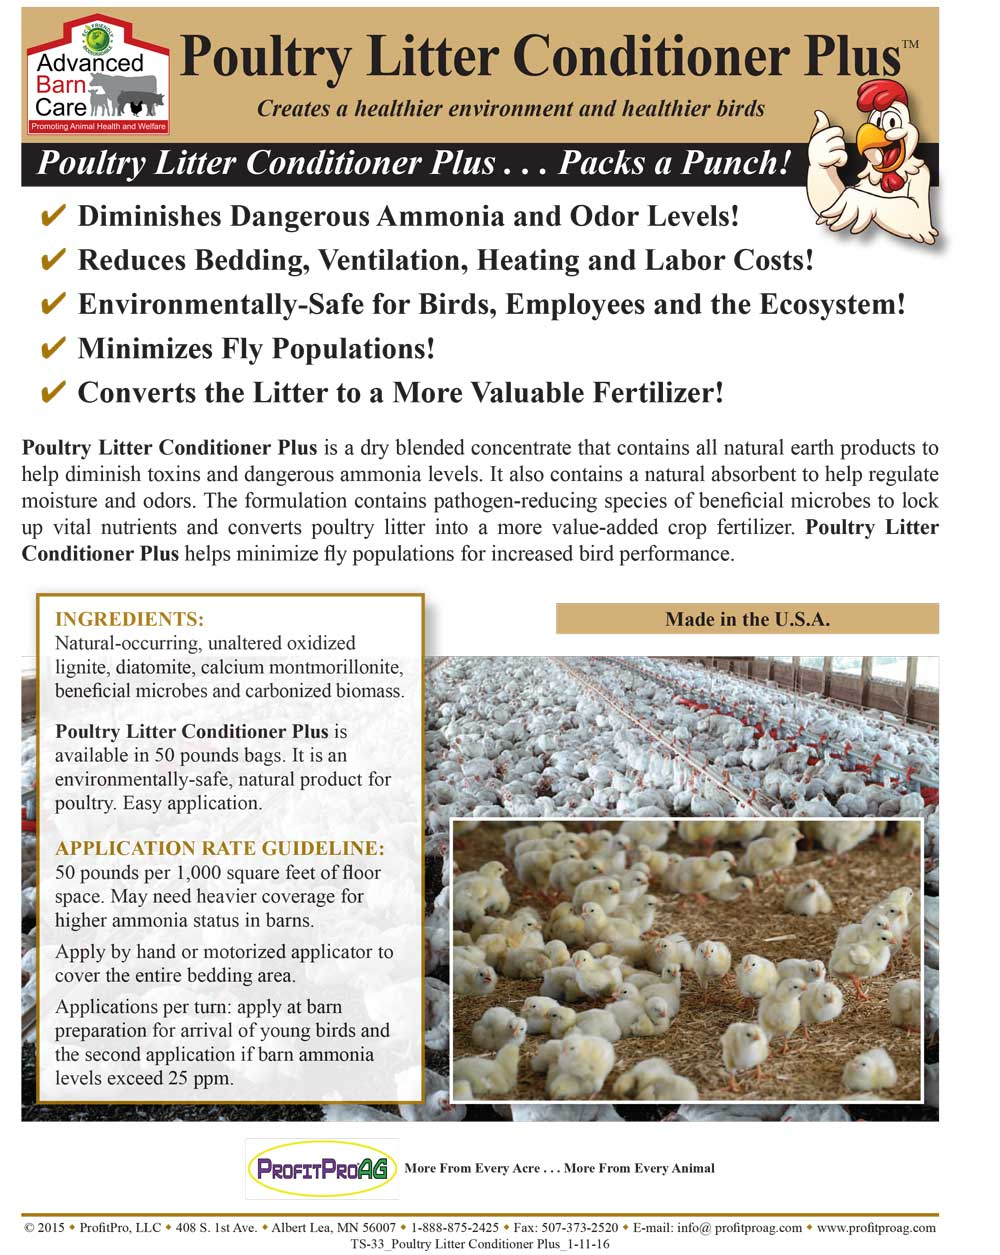 TS-33_Poultry-Litter-Conditioner-Plus